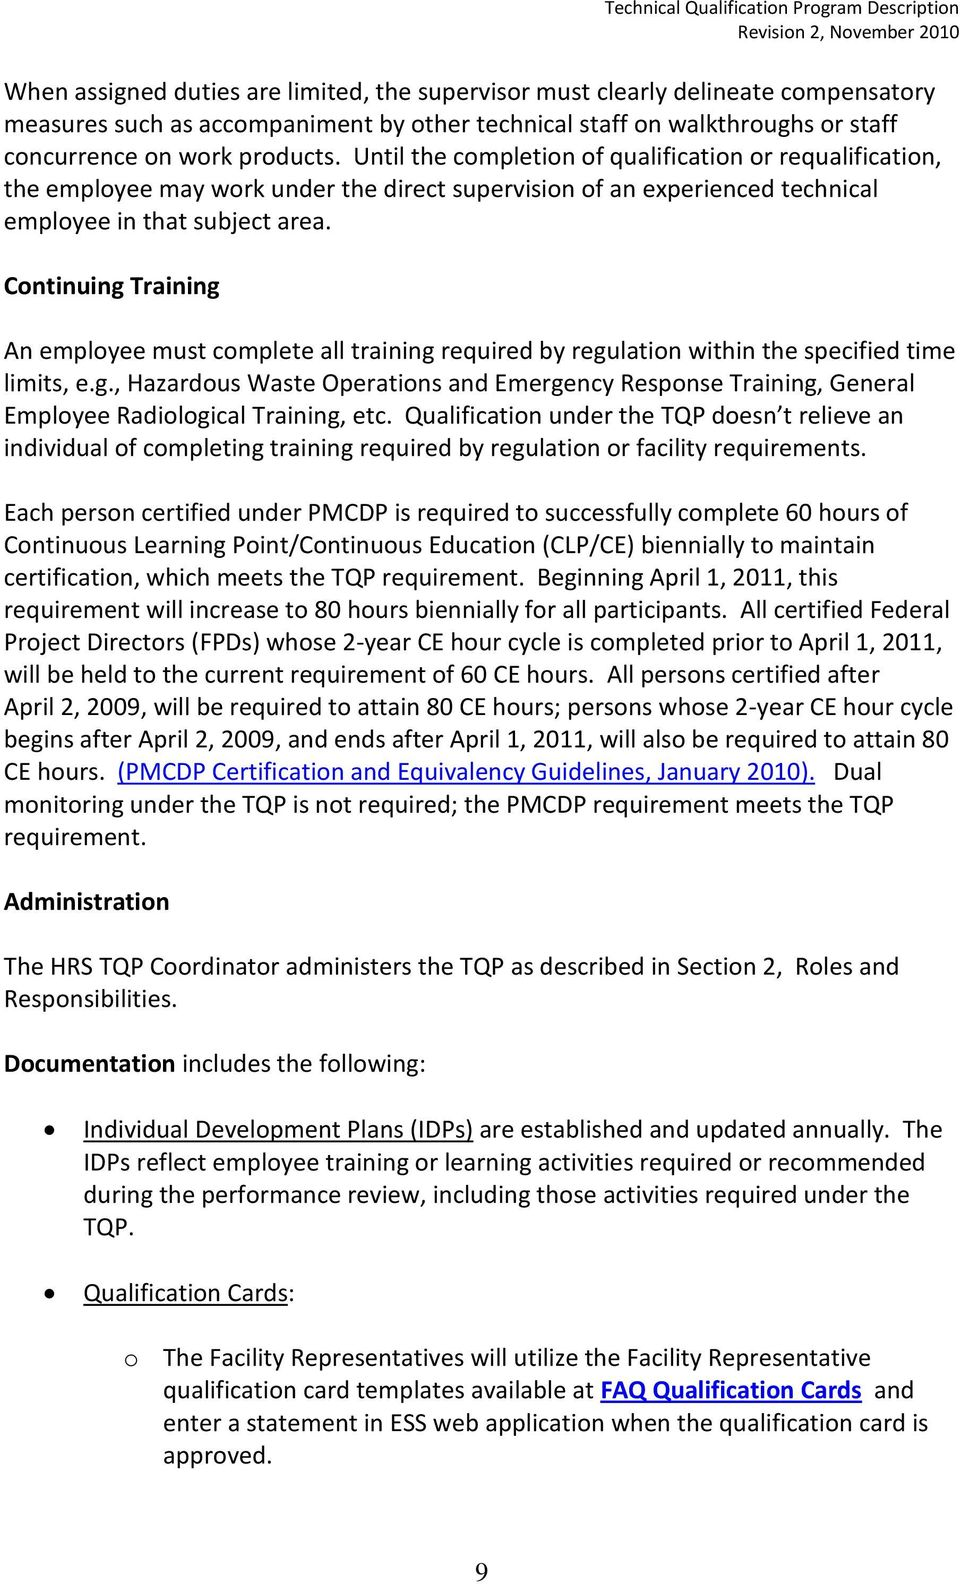 Continuing Training An employee must complete all training required by regulation within the specified time limits, e.g., Hazardous Waste Operations and Emergency Response Training, General Employee Radiological Training, etc.